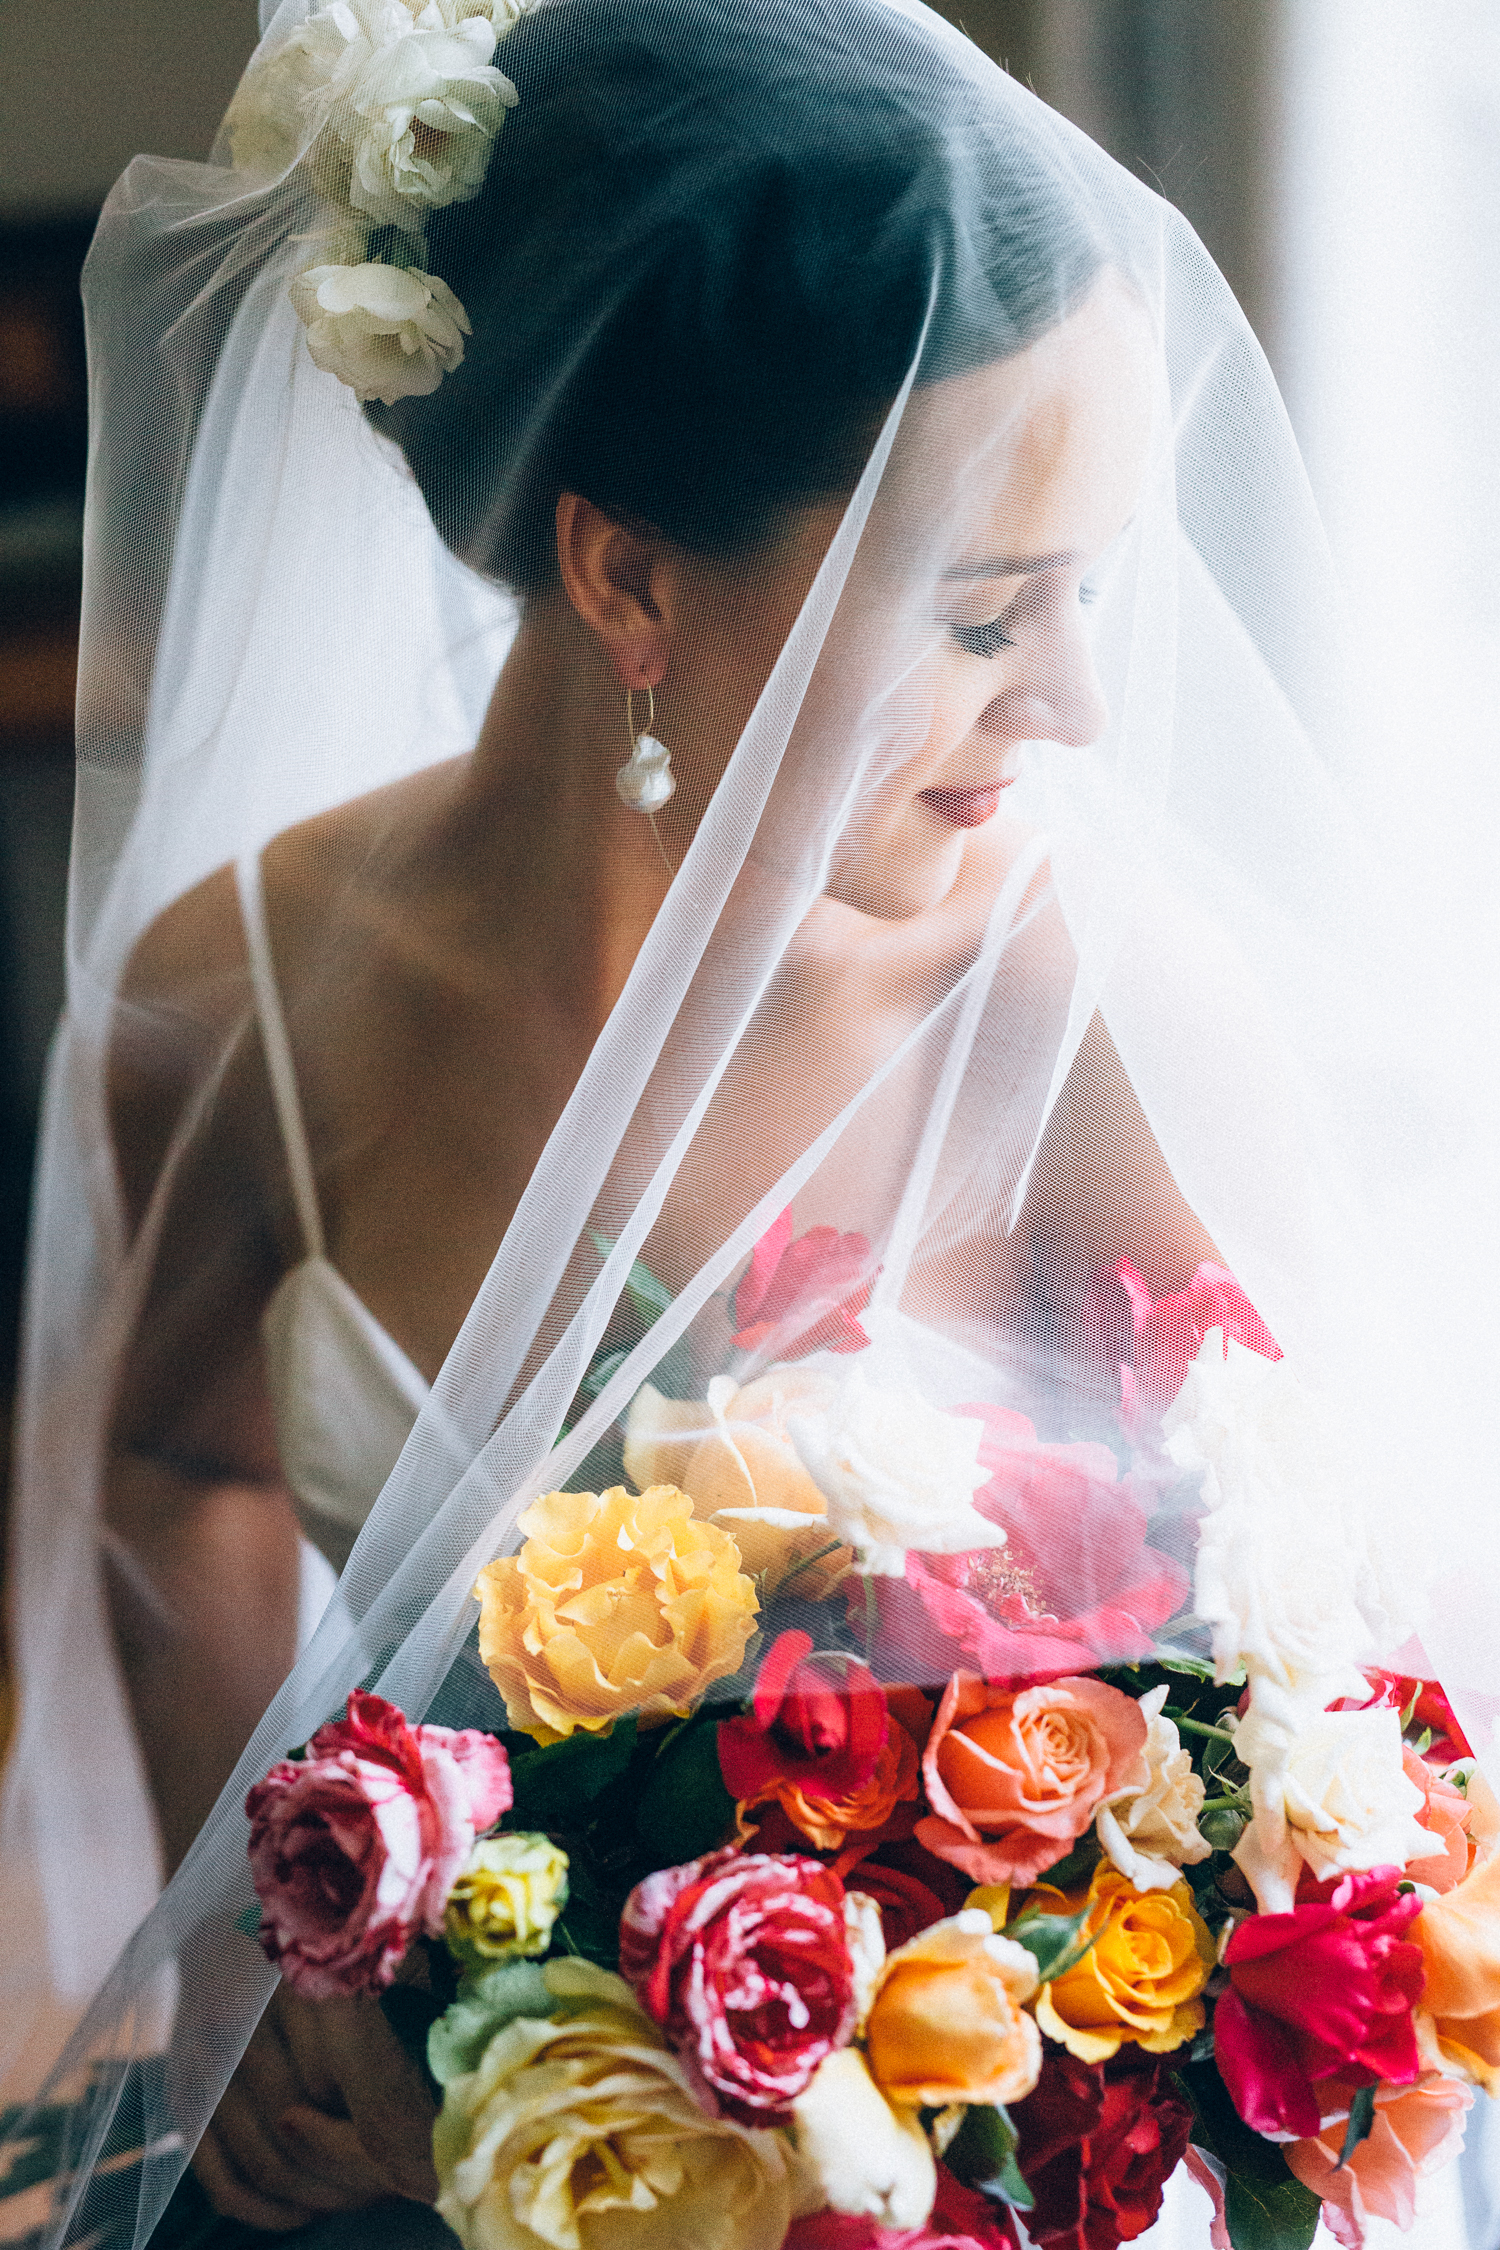 MARLI'S WEDDING - images by Tasha Seccombe